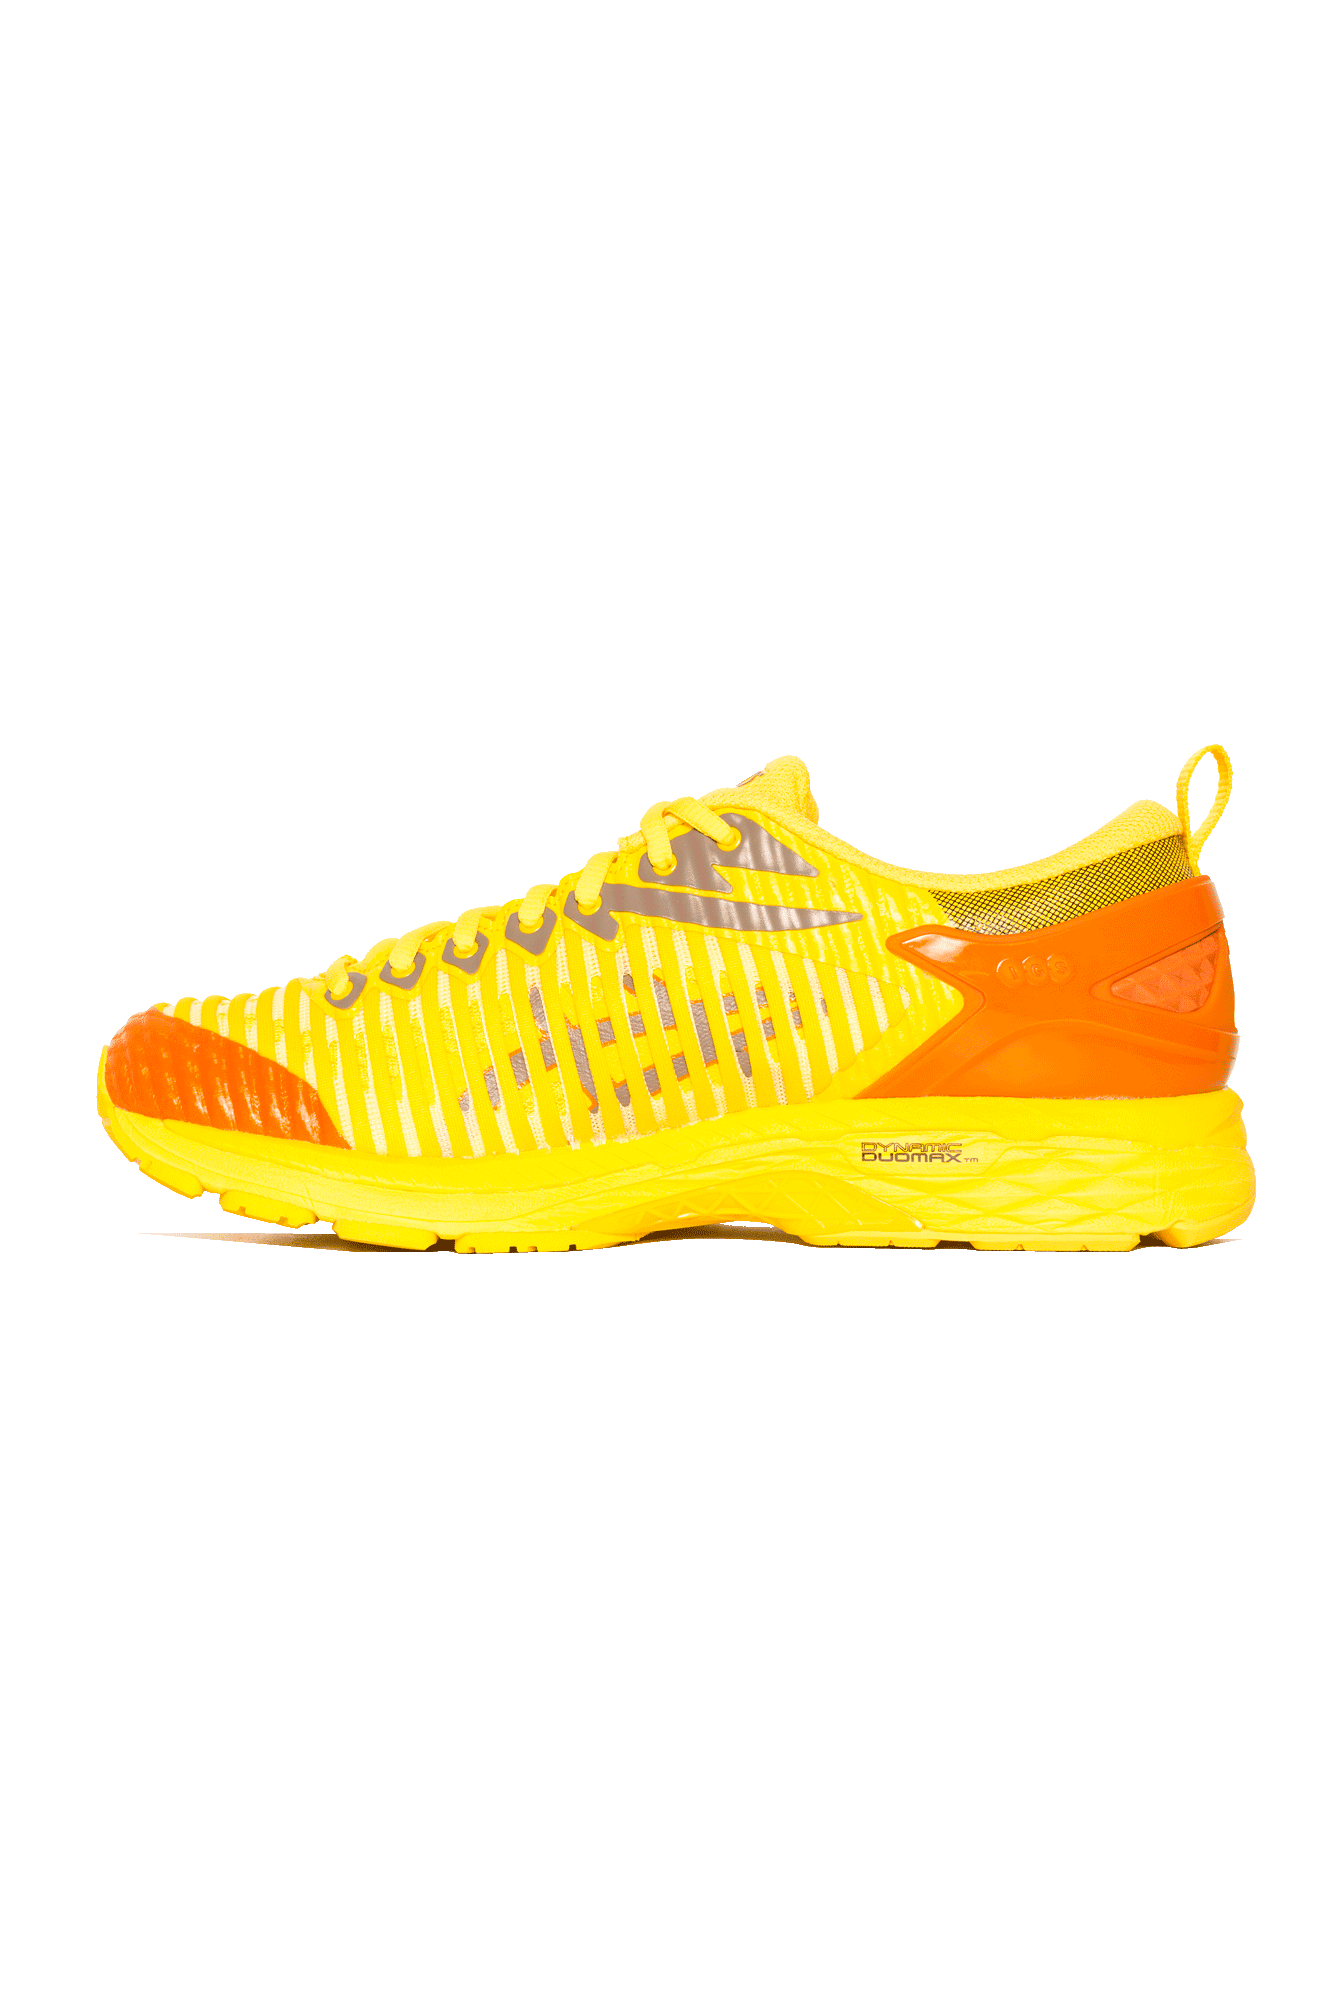 Asics Sneakers Gel Delva x Kiko Kostadinov Giallo 1013A041#000#750#8 - One Block Down